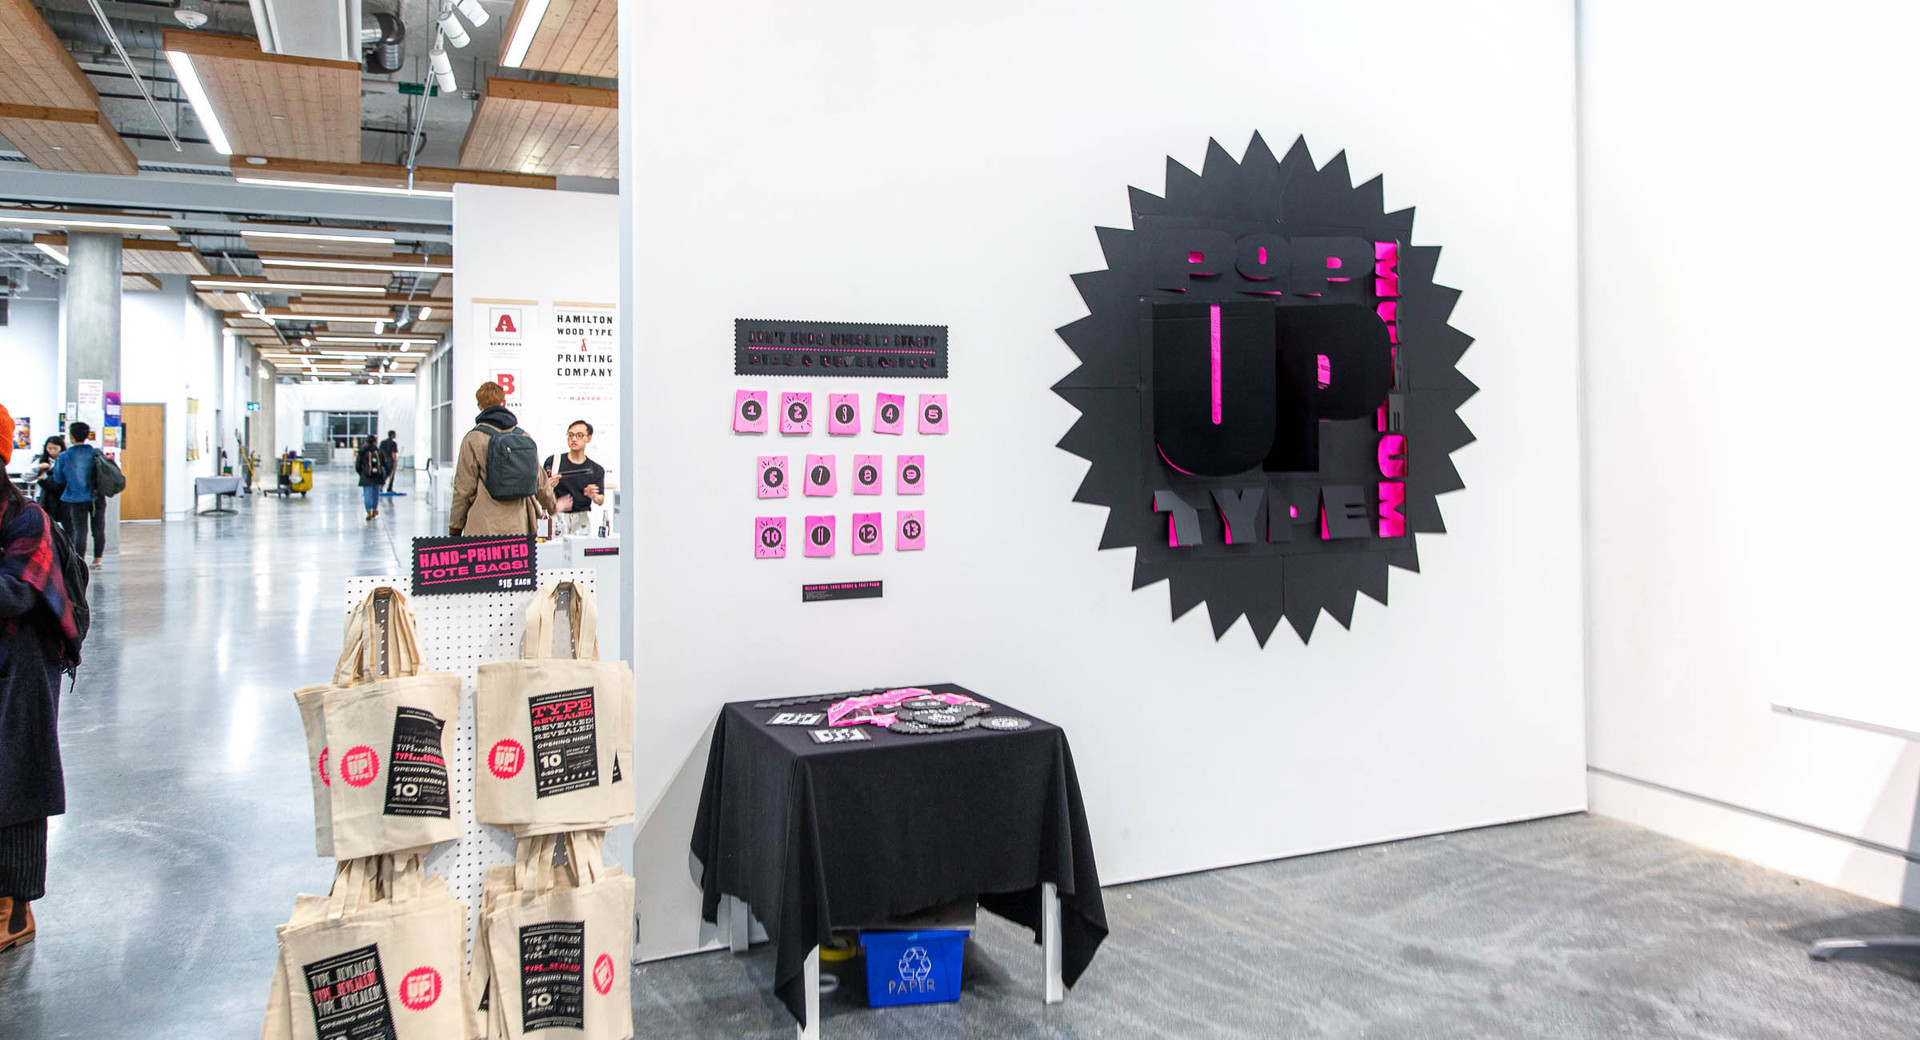 triet-pham-pop-up-type-museum-opening-ni